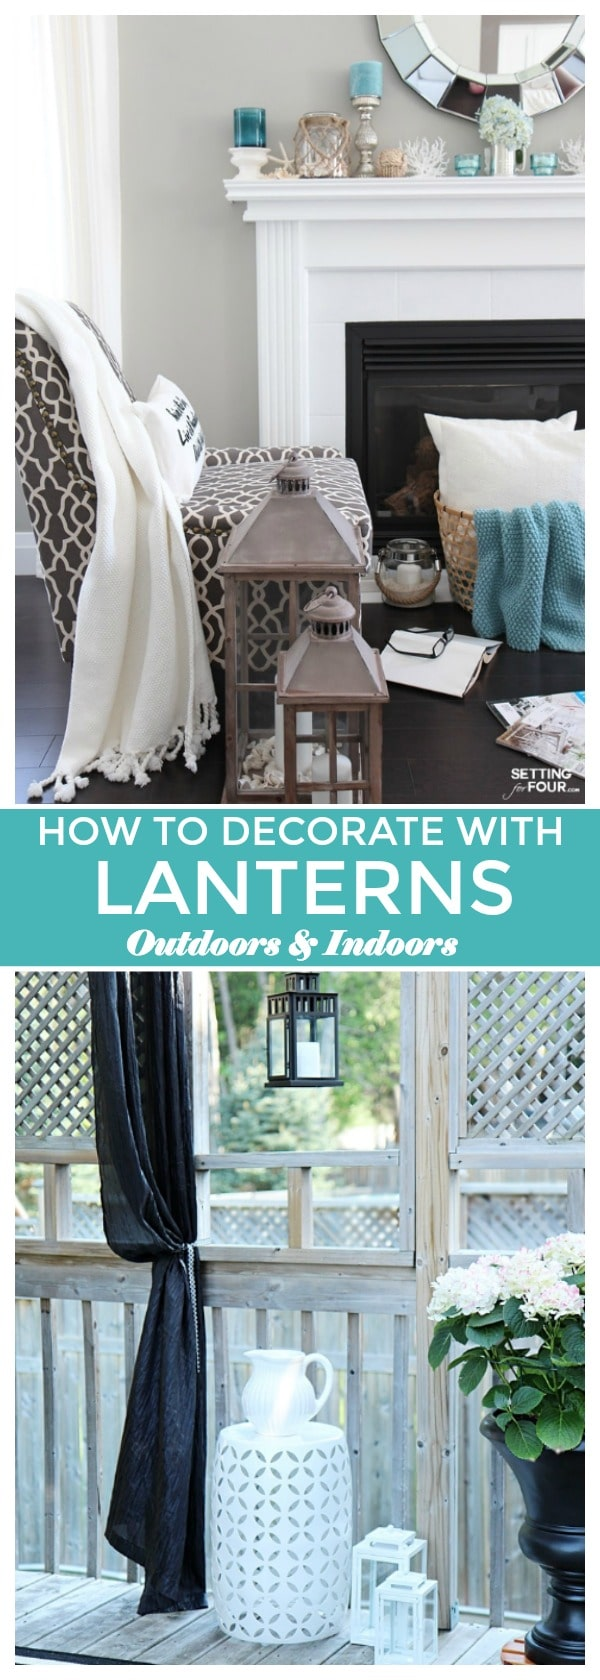 Decorating with lanterns - ideas for outdoors and indoors! See why I'm so obsessed with these multitasking decor accents!